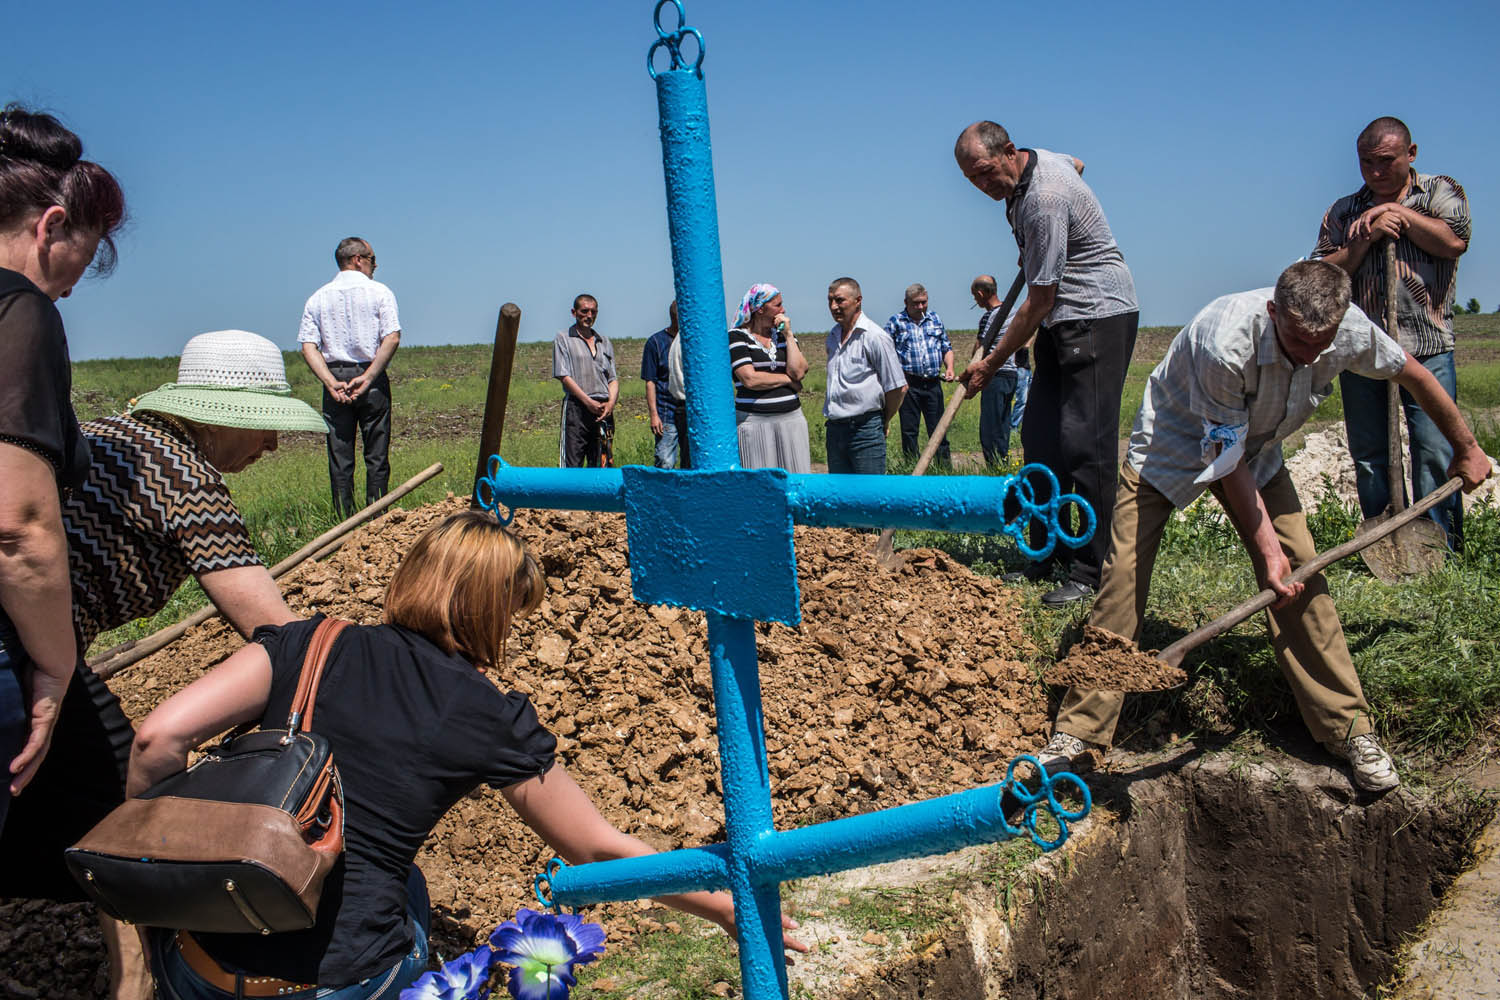 May 16, 2014. Mourners fill in the grave of Elena Ott, 42, in Starovarvarovka, Ukraine. Ott was killed two days prior when the car she was riding in was fired on by forces her family believes to be the Ukrainian military.